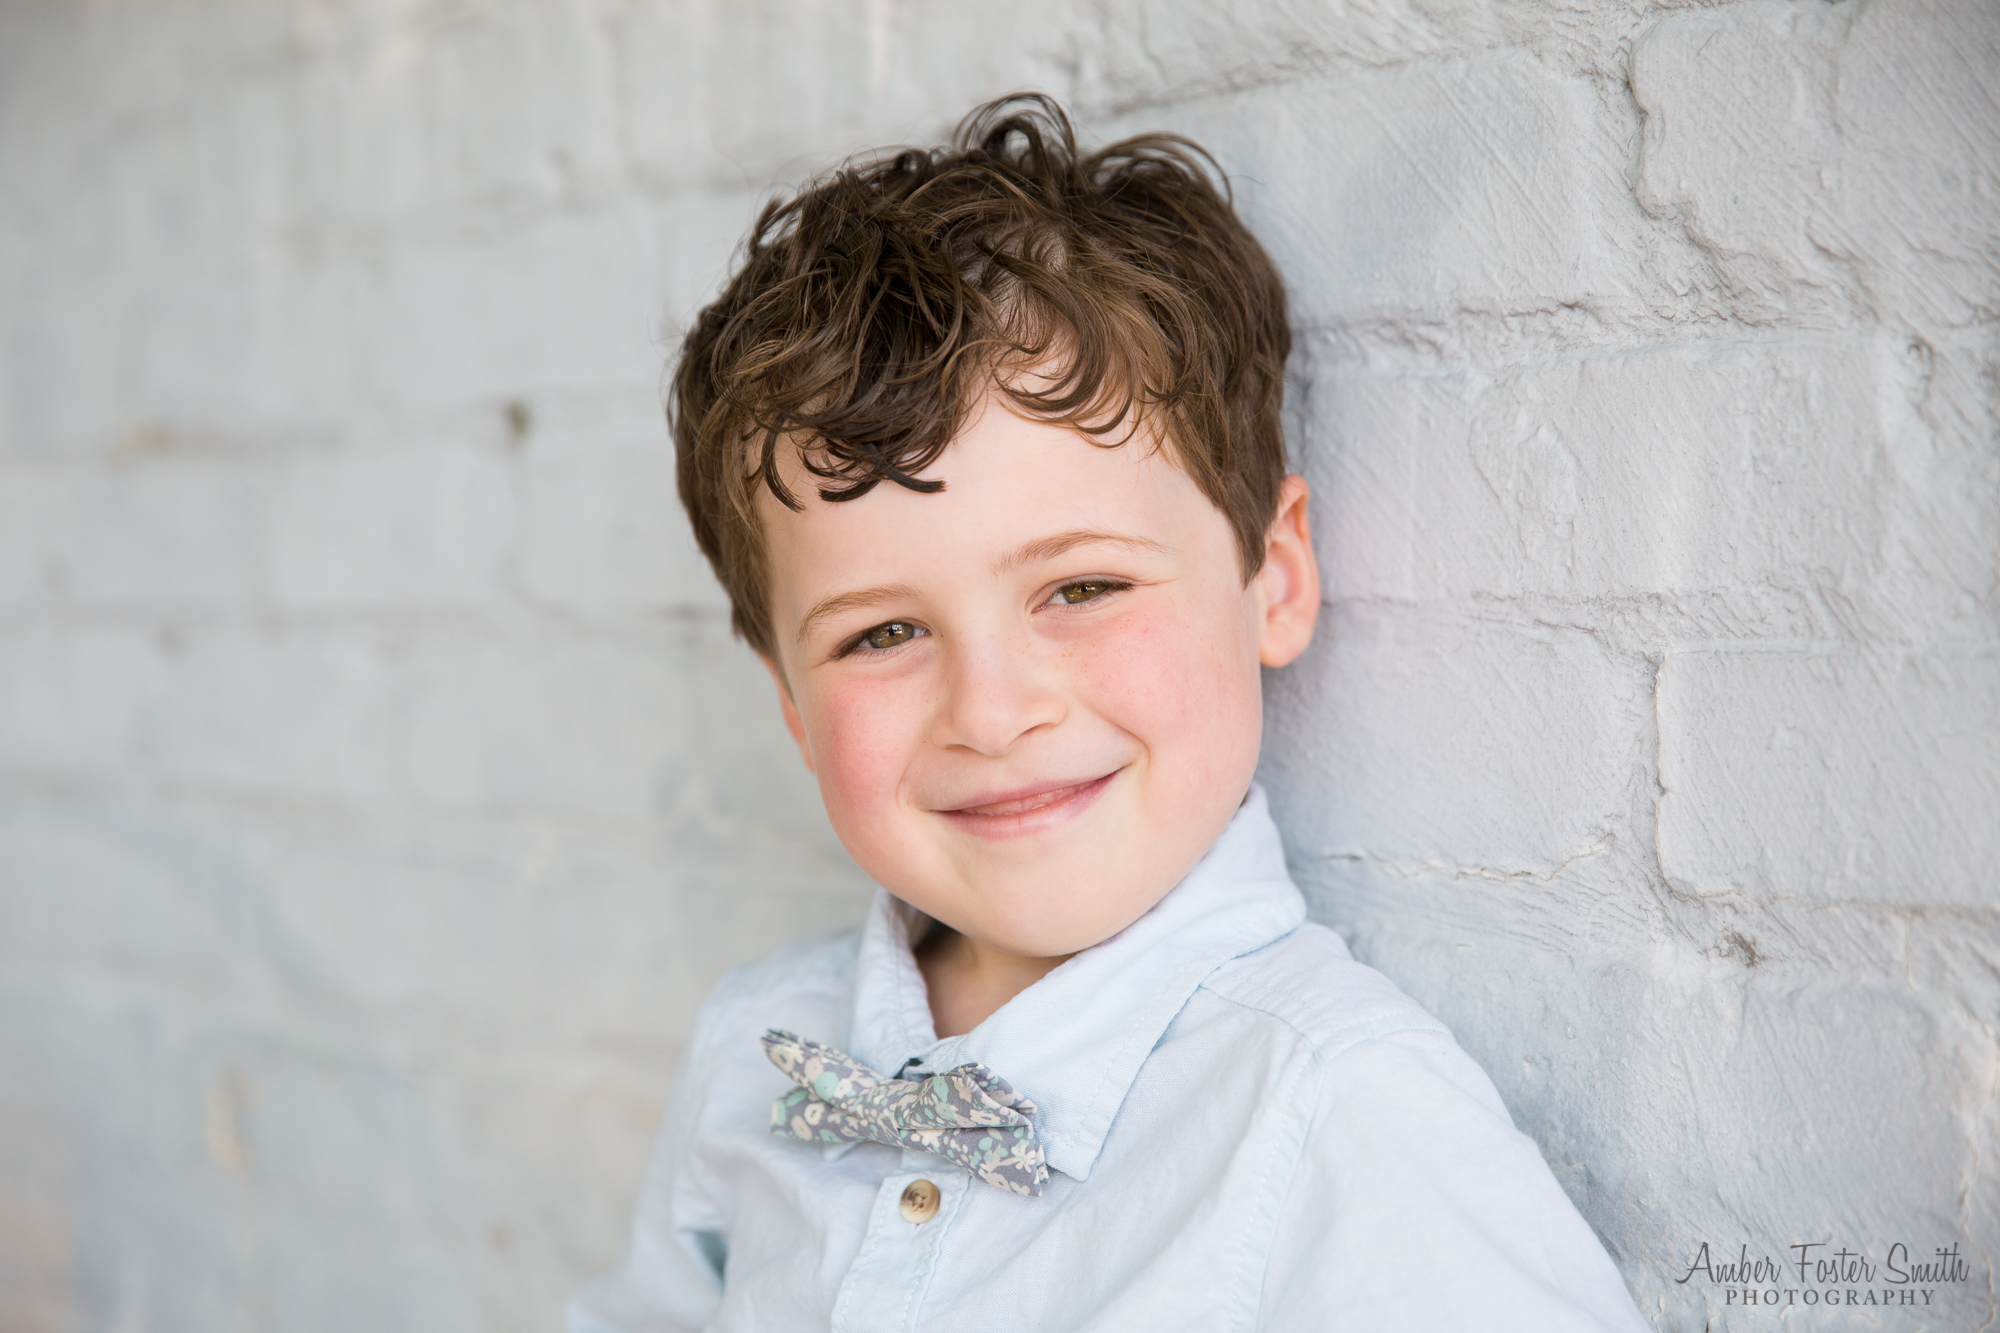 little boy in bow tie smiling